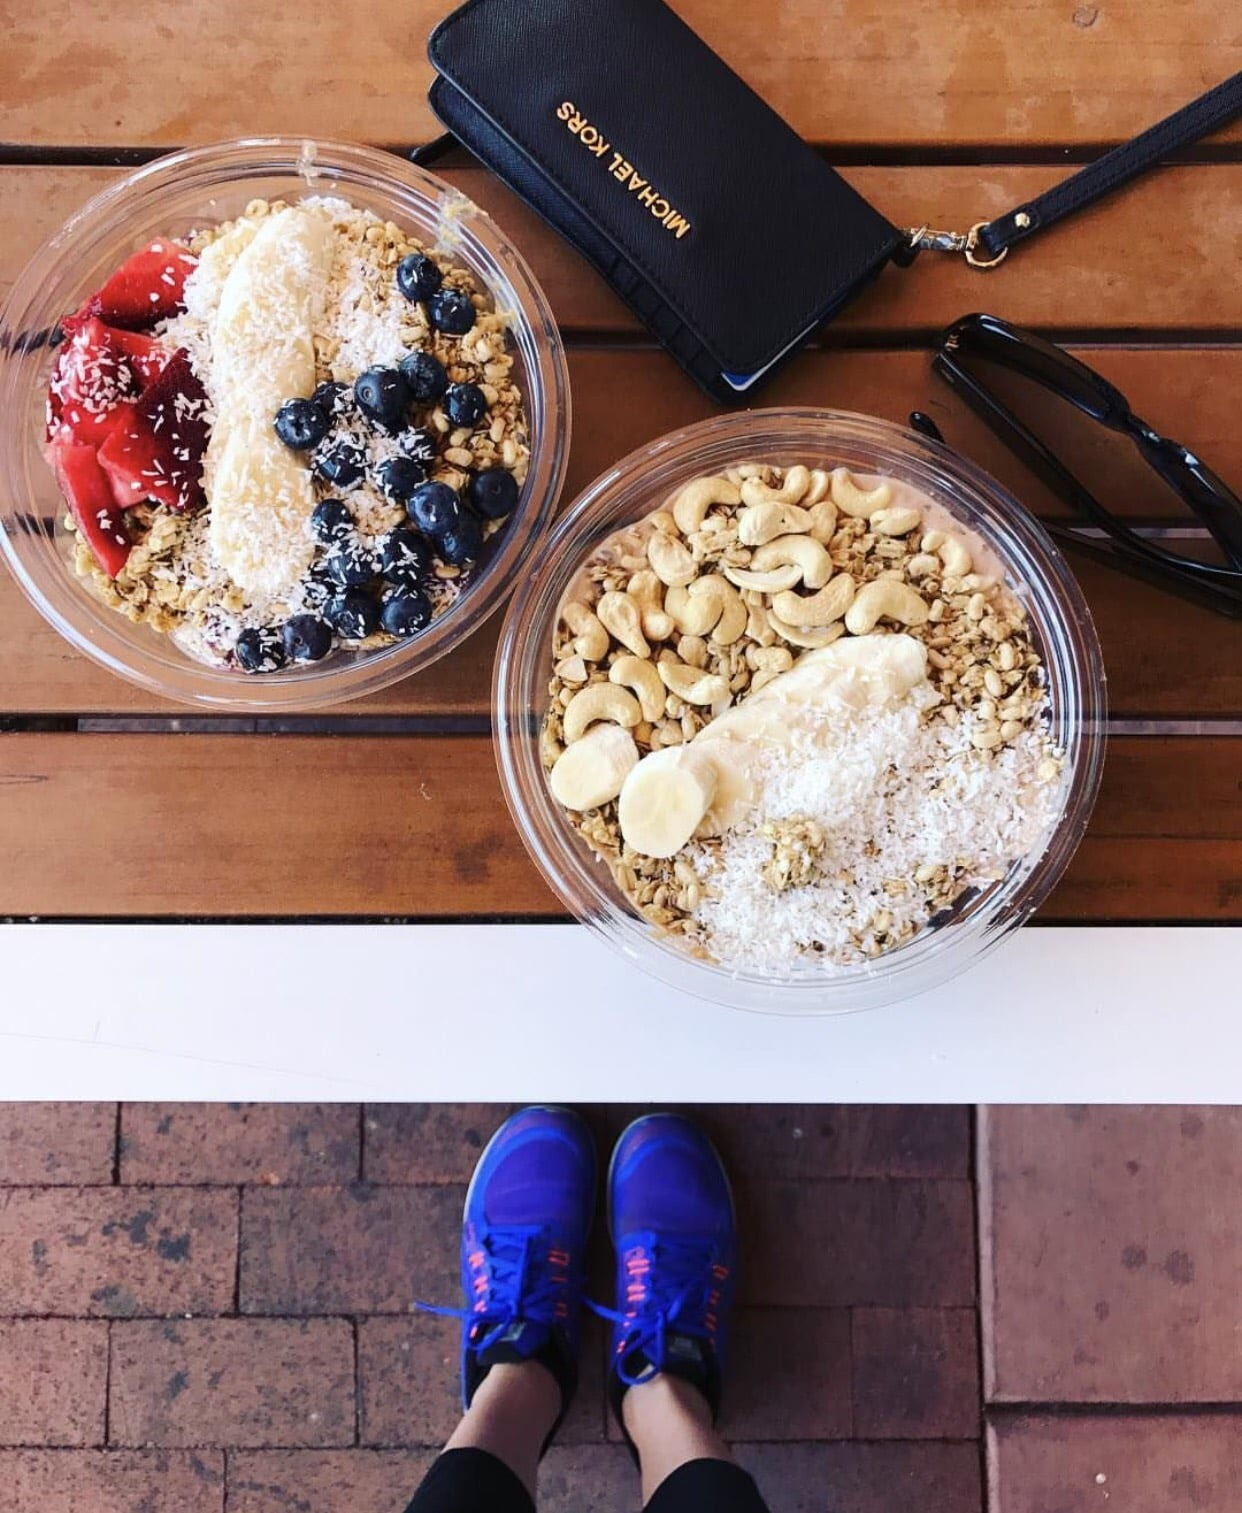 This is a close up of 2 acai bowls from Whole Foods.